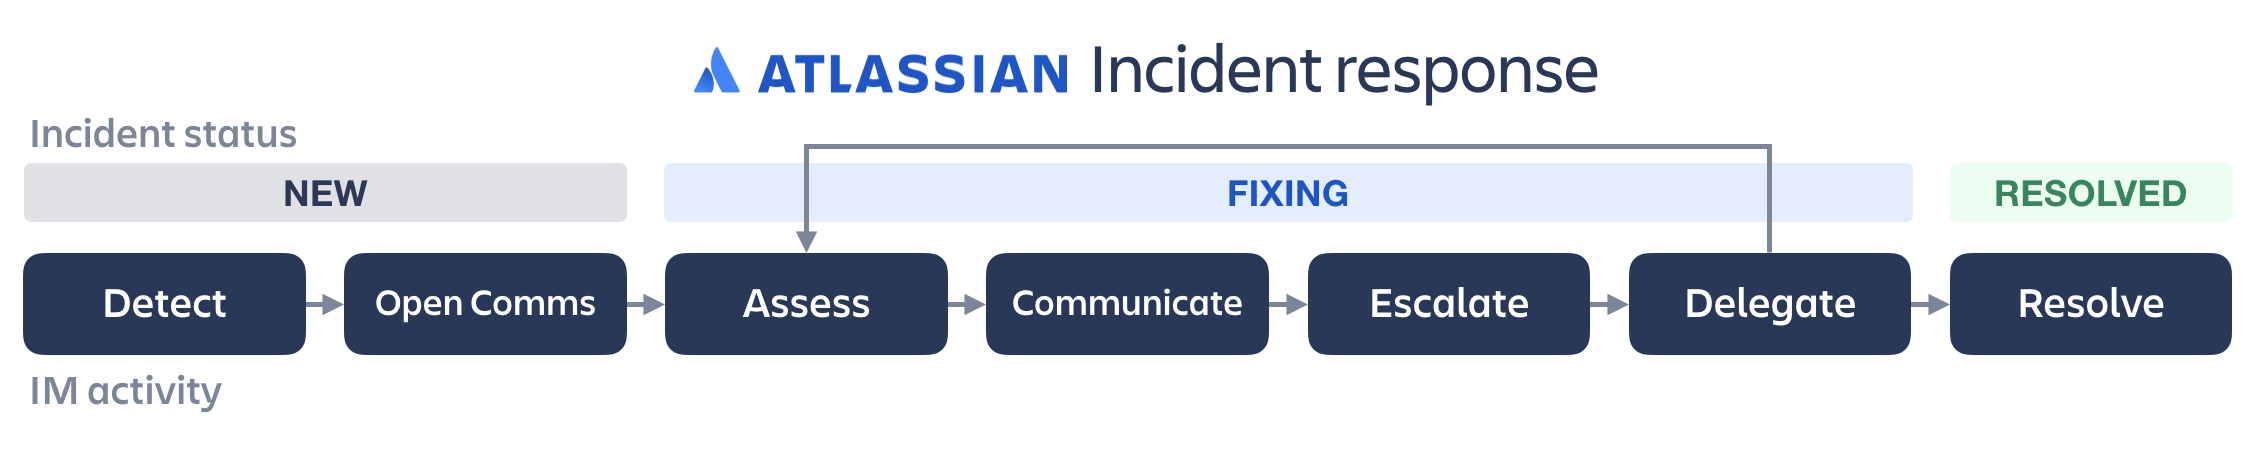 Workflow of Atlassian incident response from new to fixing to resolved